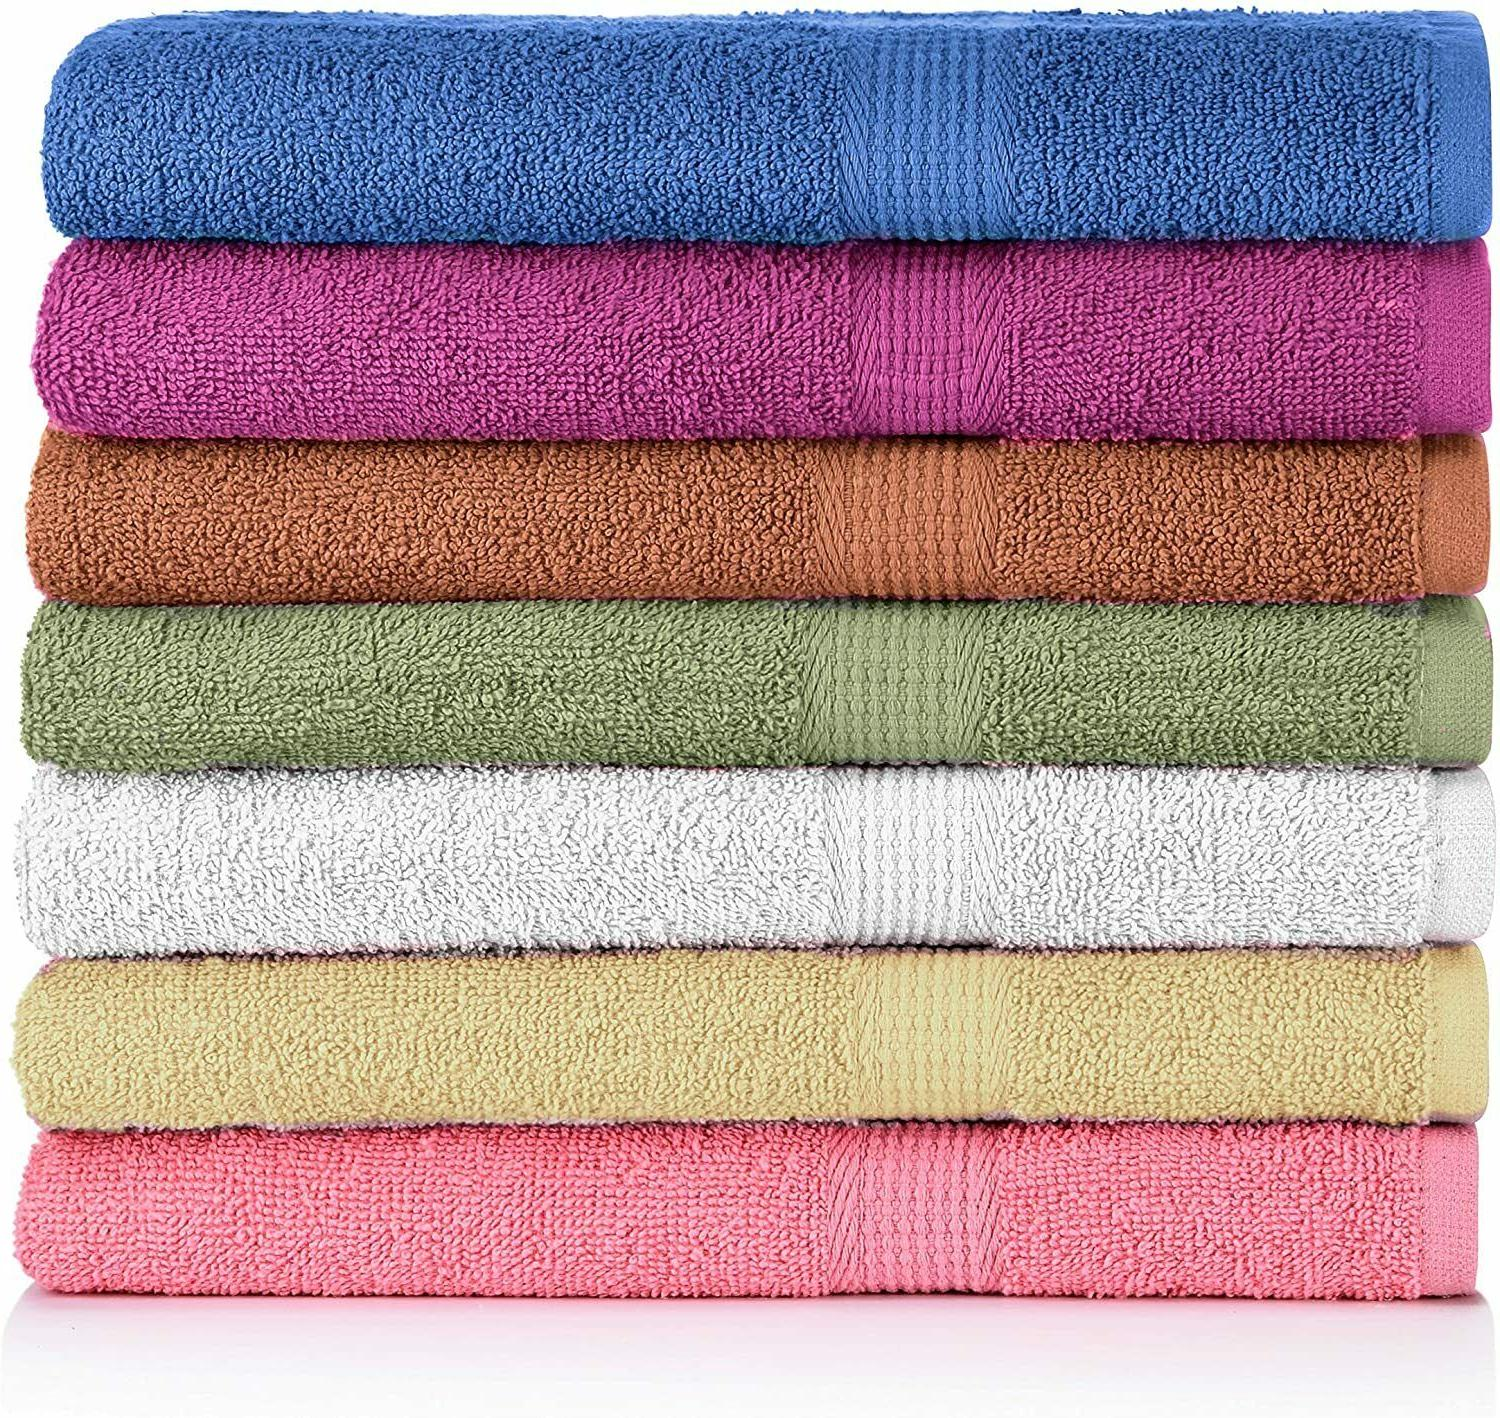 7 pack bath towels extra absorbent 100